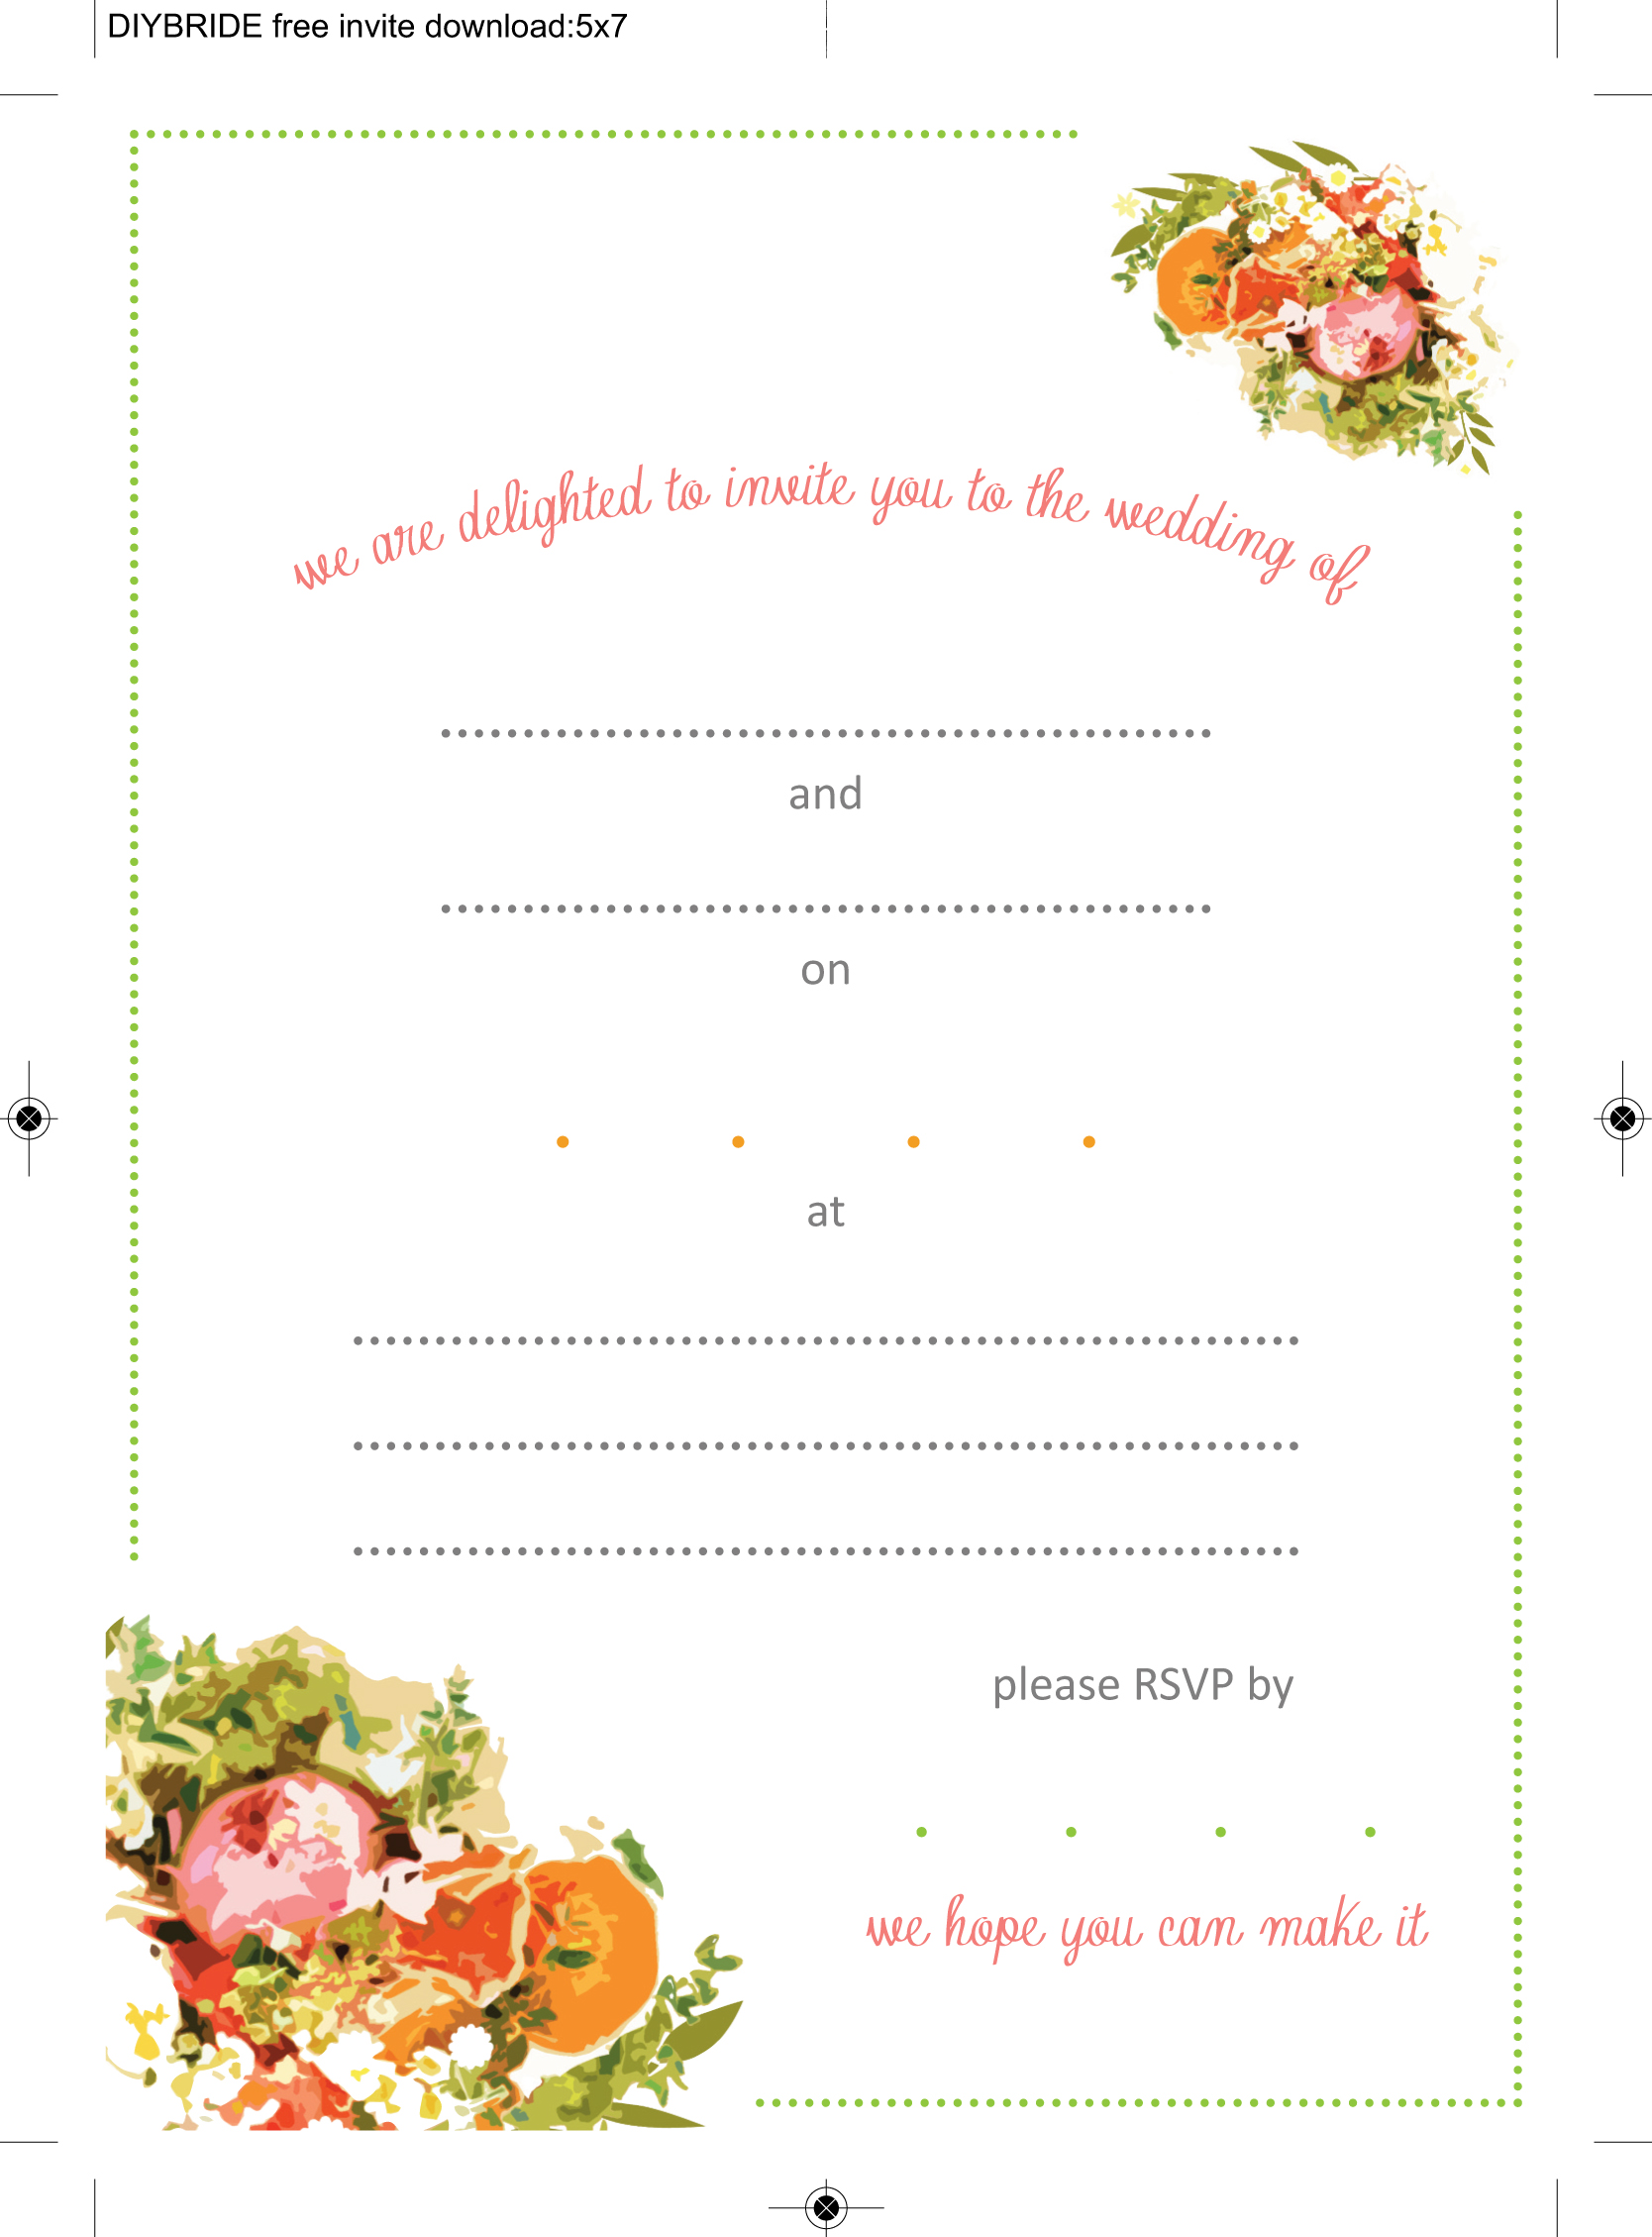 Open Template In Adobe Reader. If You Donu0027t Have It Installed, Download A  Free Trial From Adobe.com. 2. Click On The Blue Box To Activate The  Editable Text ...  Download Free Wedding Invitation Templates For Word